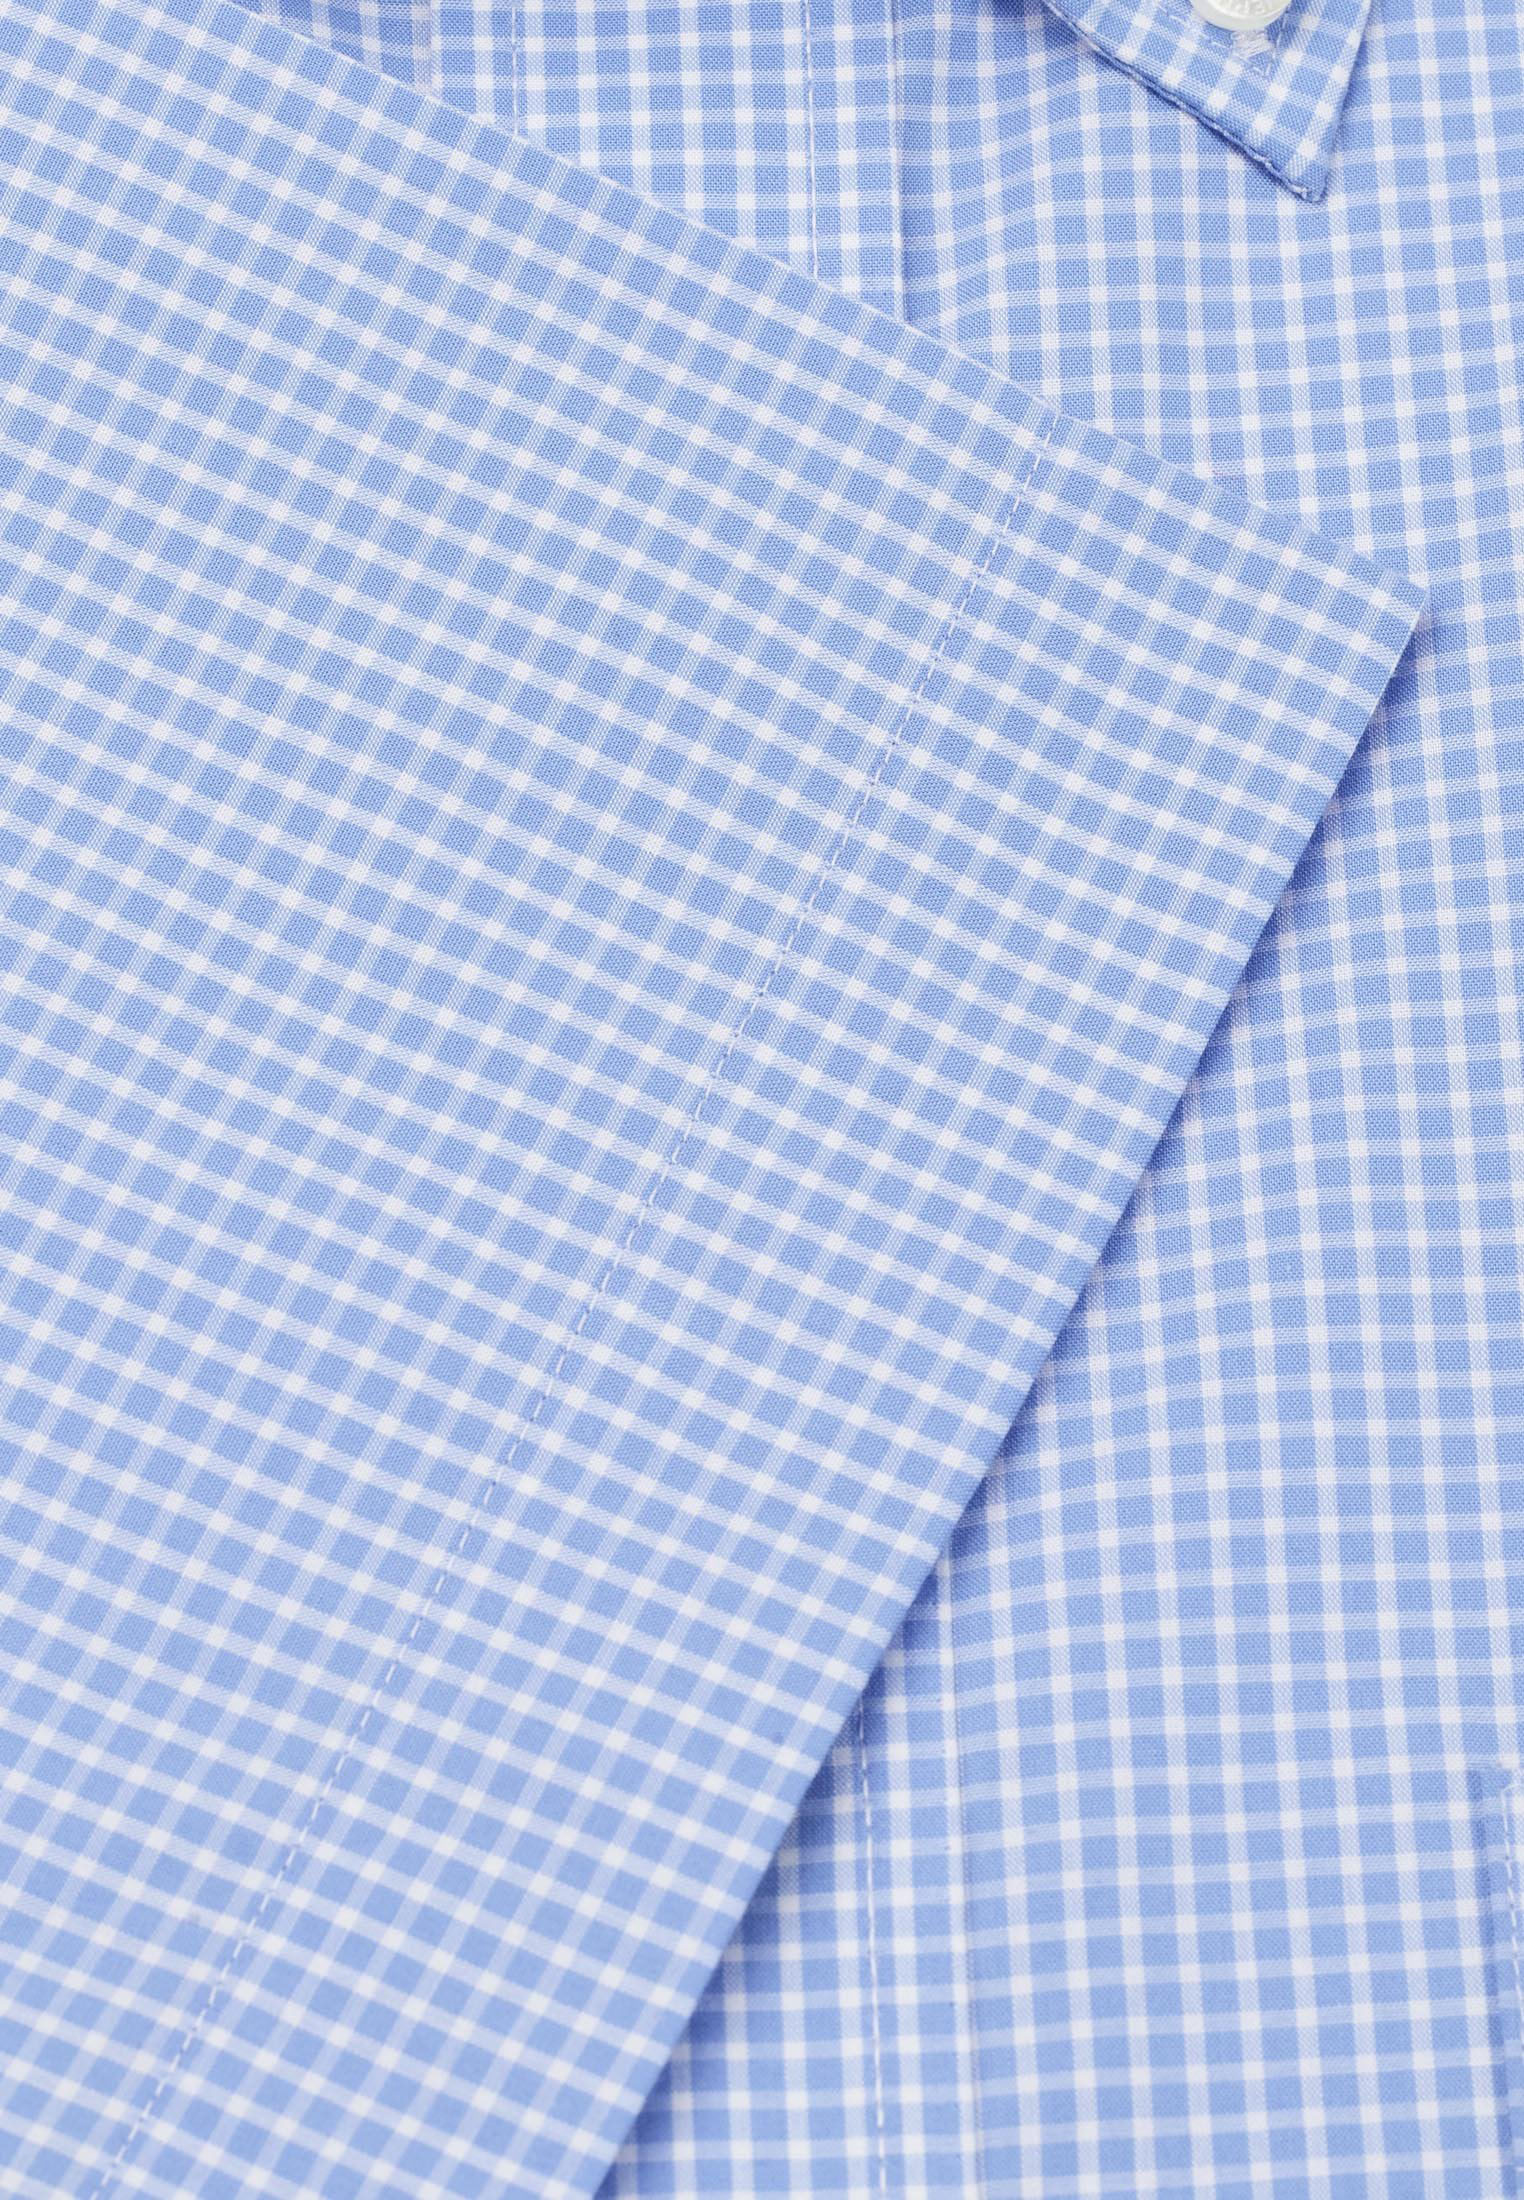 Long And Short Sleeve Sky Neat Check Button Down Collar Shirt